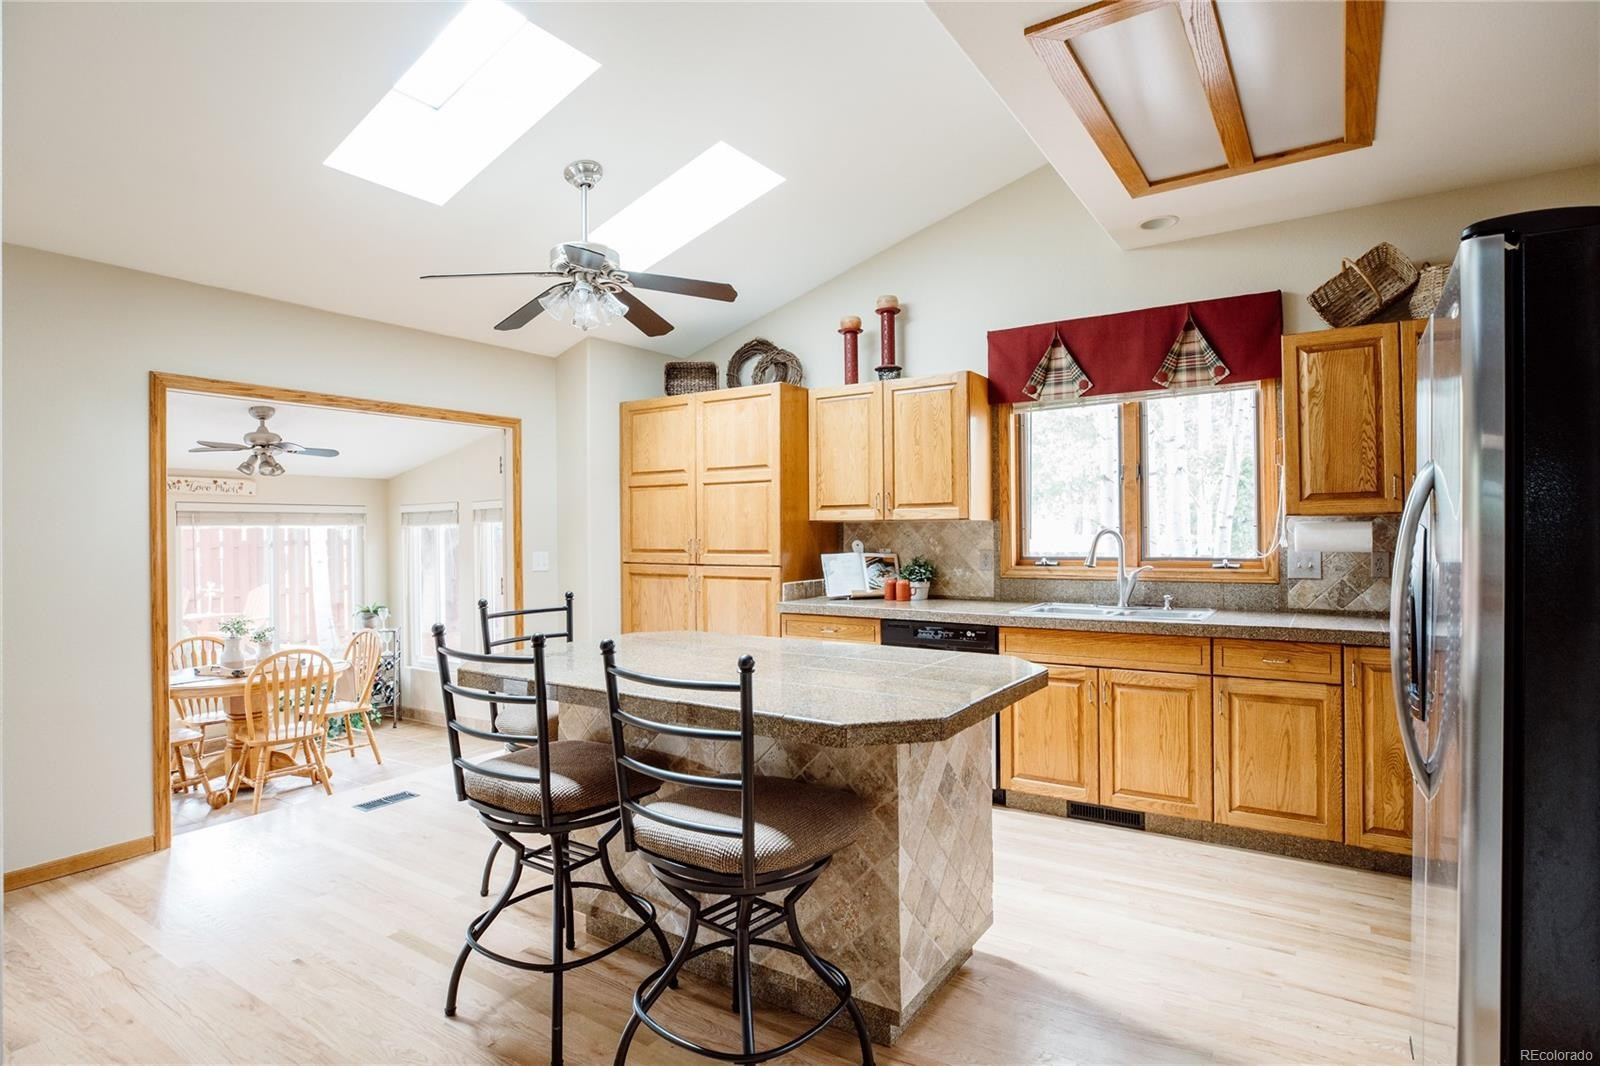 MLS# 4033949 - 14 - 3713 Ashmount Drive, Fort Collins, CO 80525